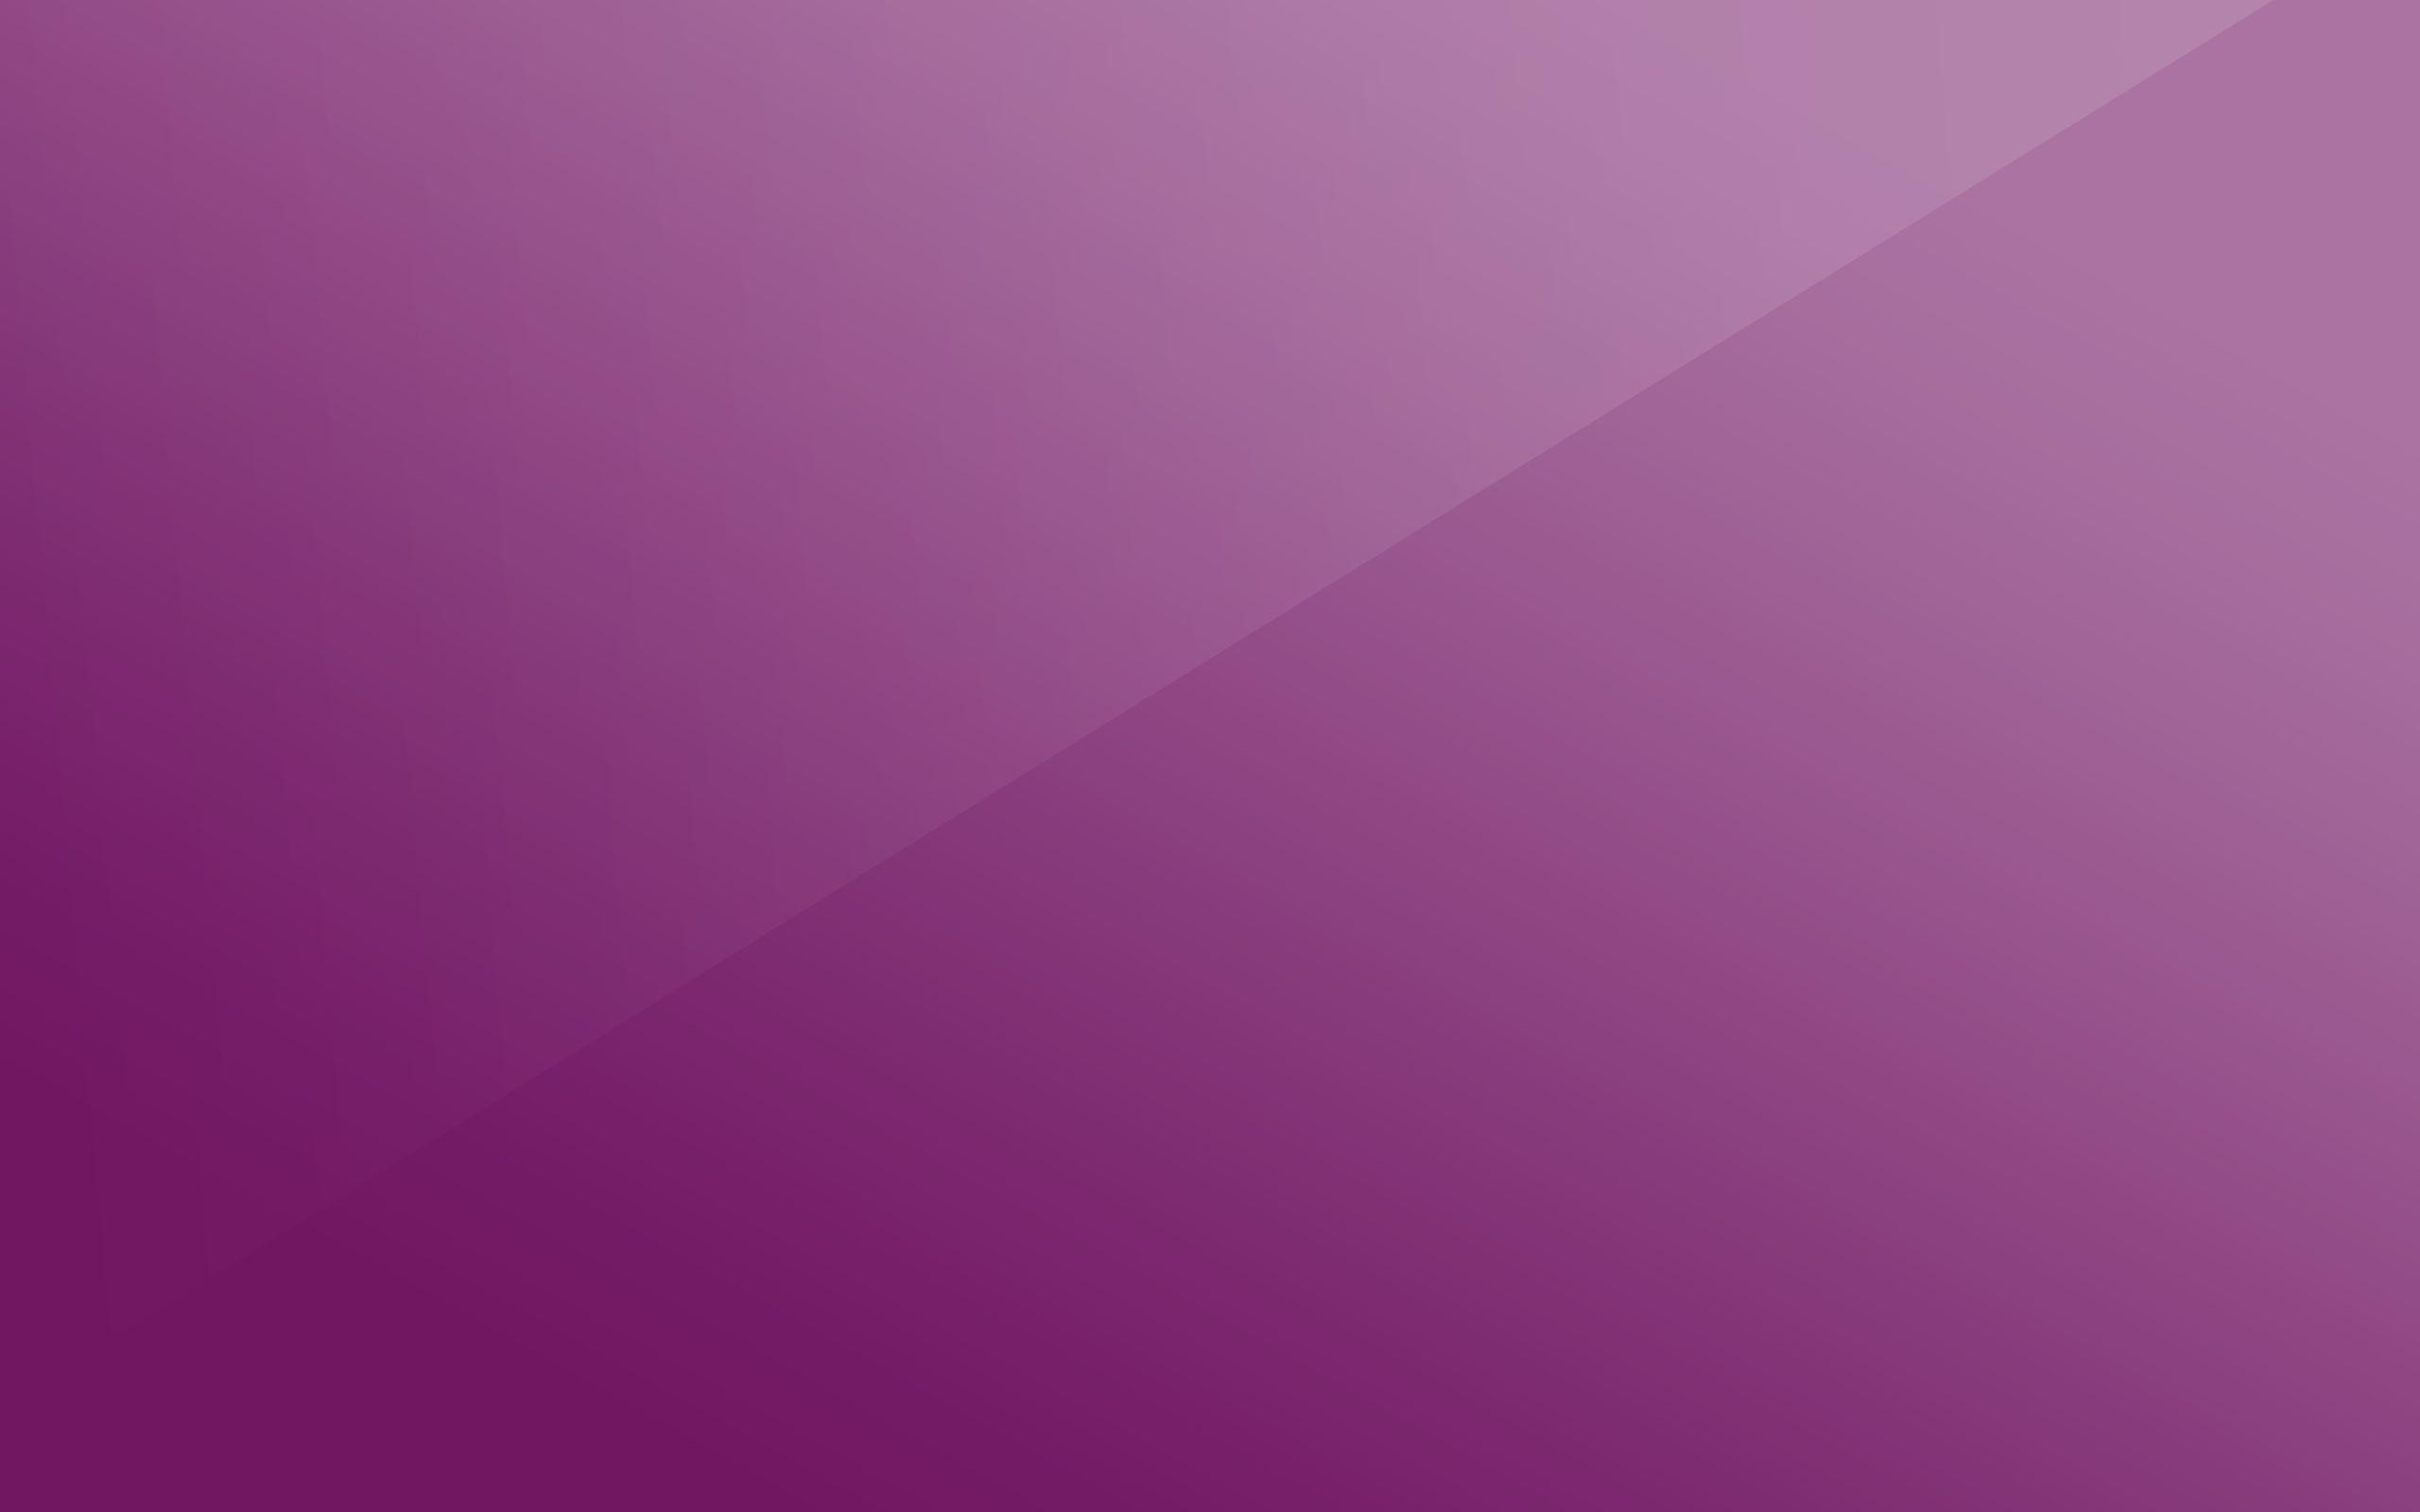 Wallpapers For > Cool Light Purple Backgrounds